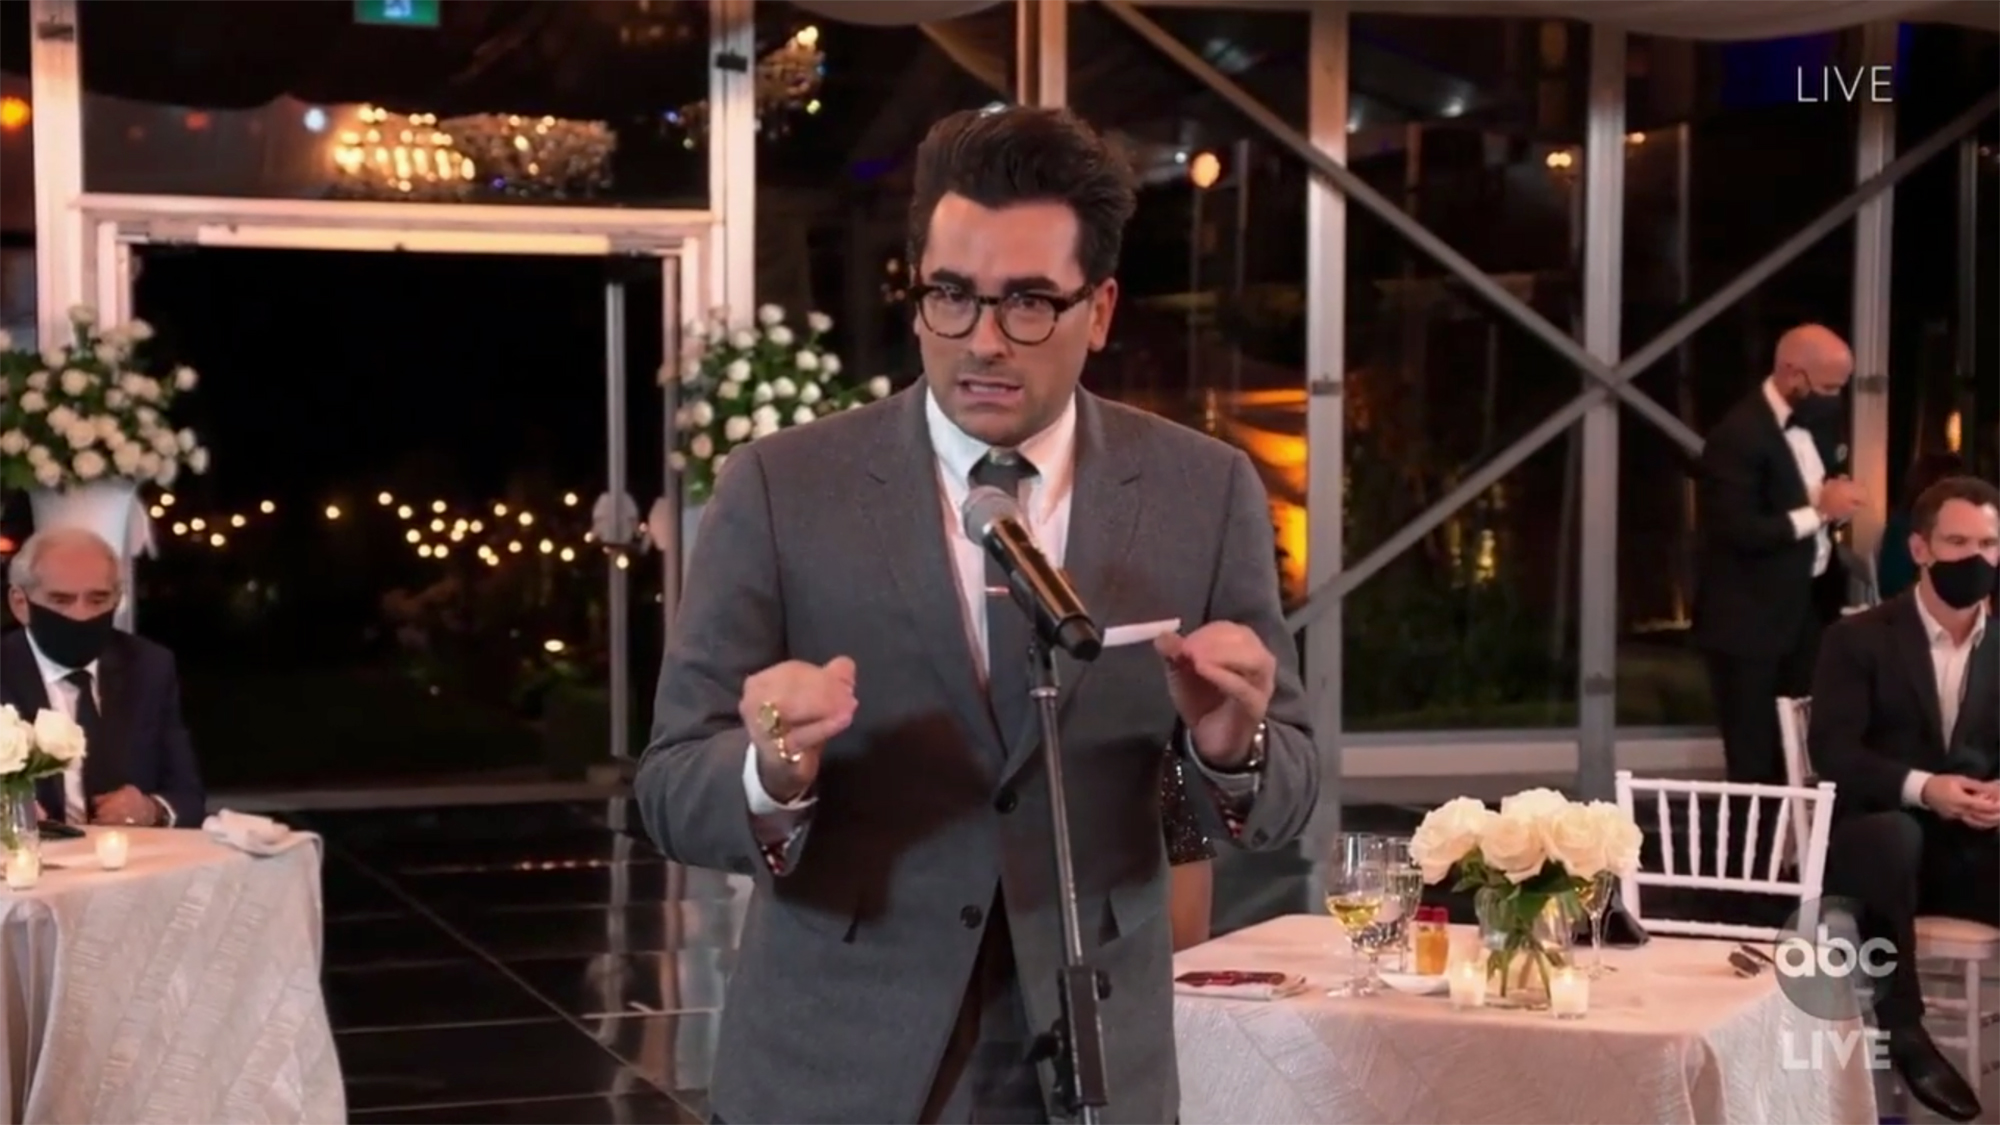 Dan Levy Best Supporting Actor win